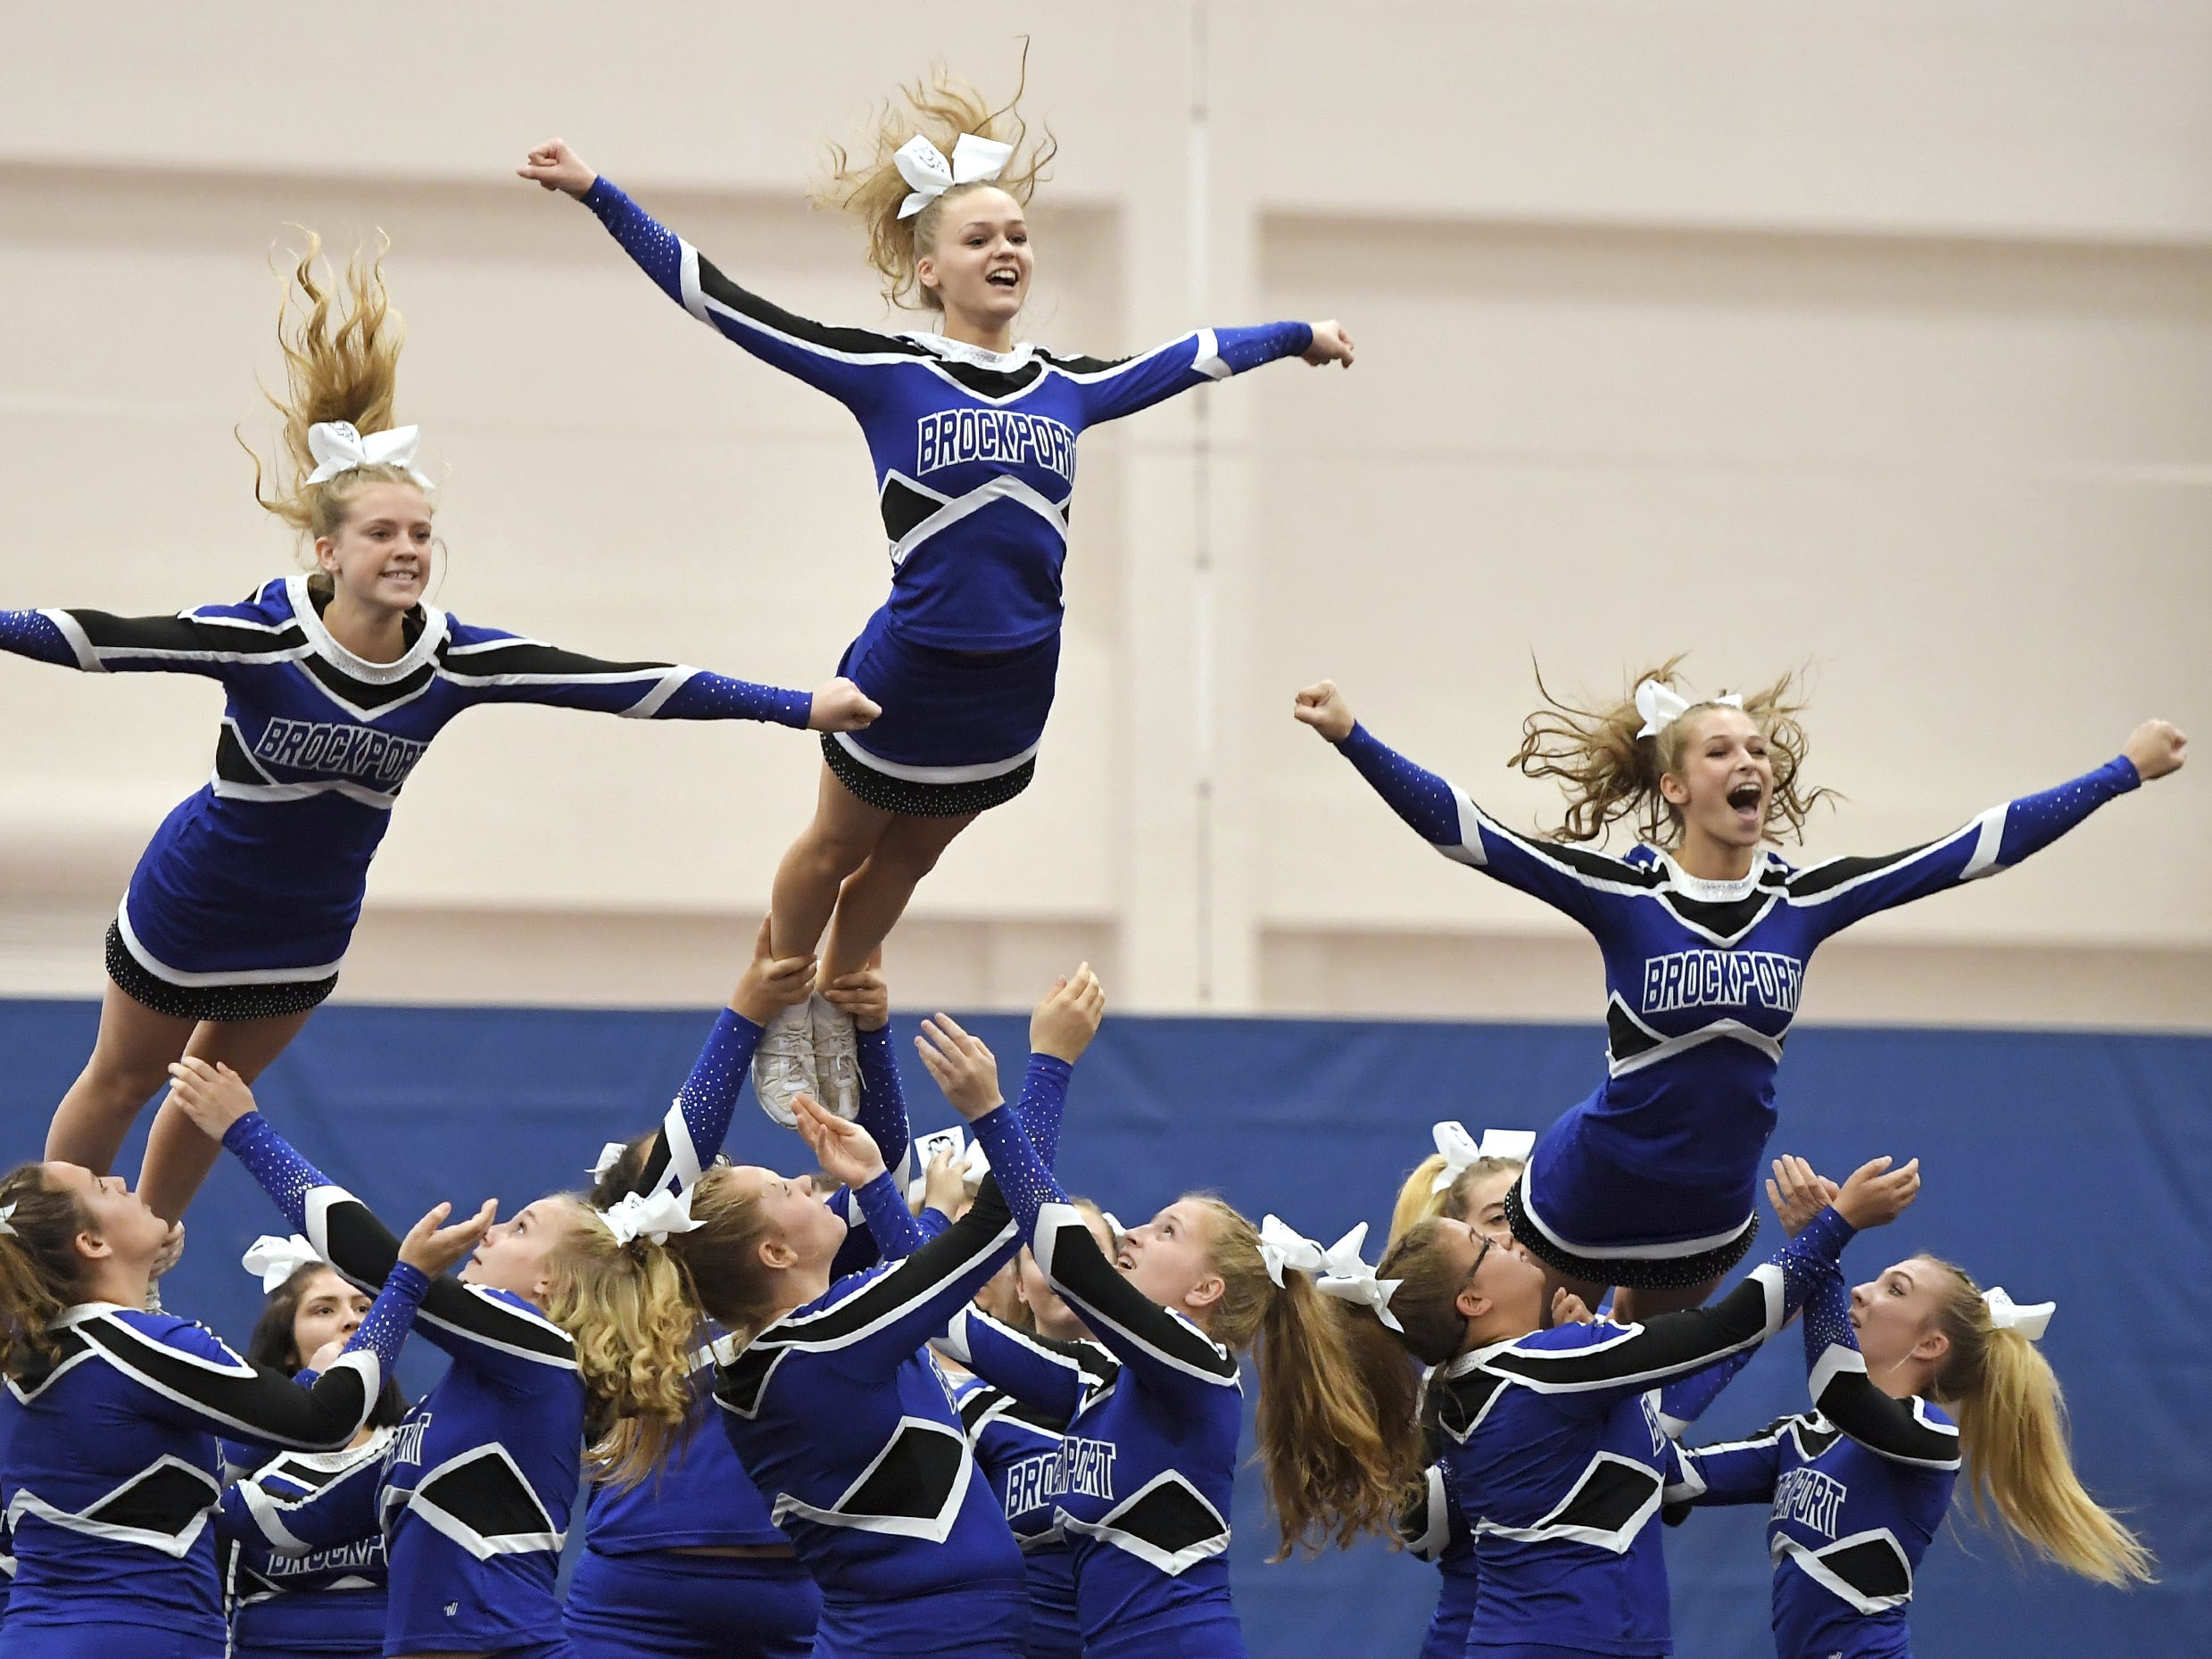 Brockport cheerleaders perform their routine during the Section V Fall Cheerleading Championships at RIT, Saturday, Oct. 27, 2018.